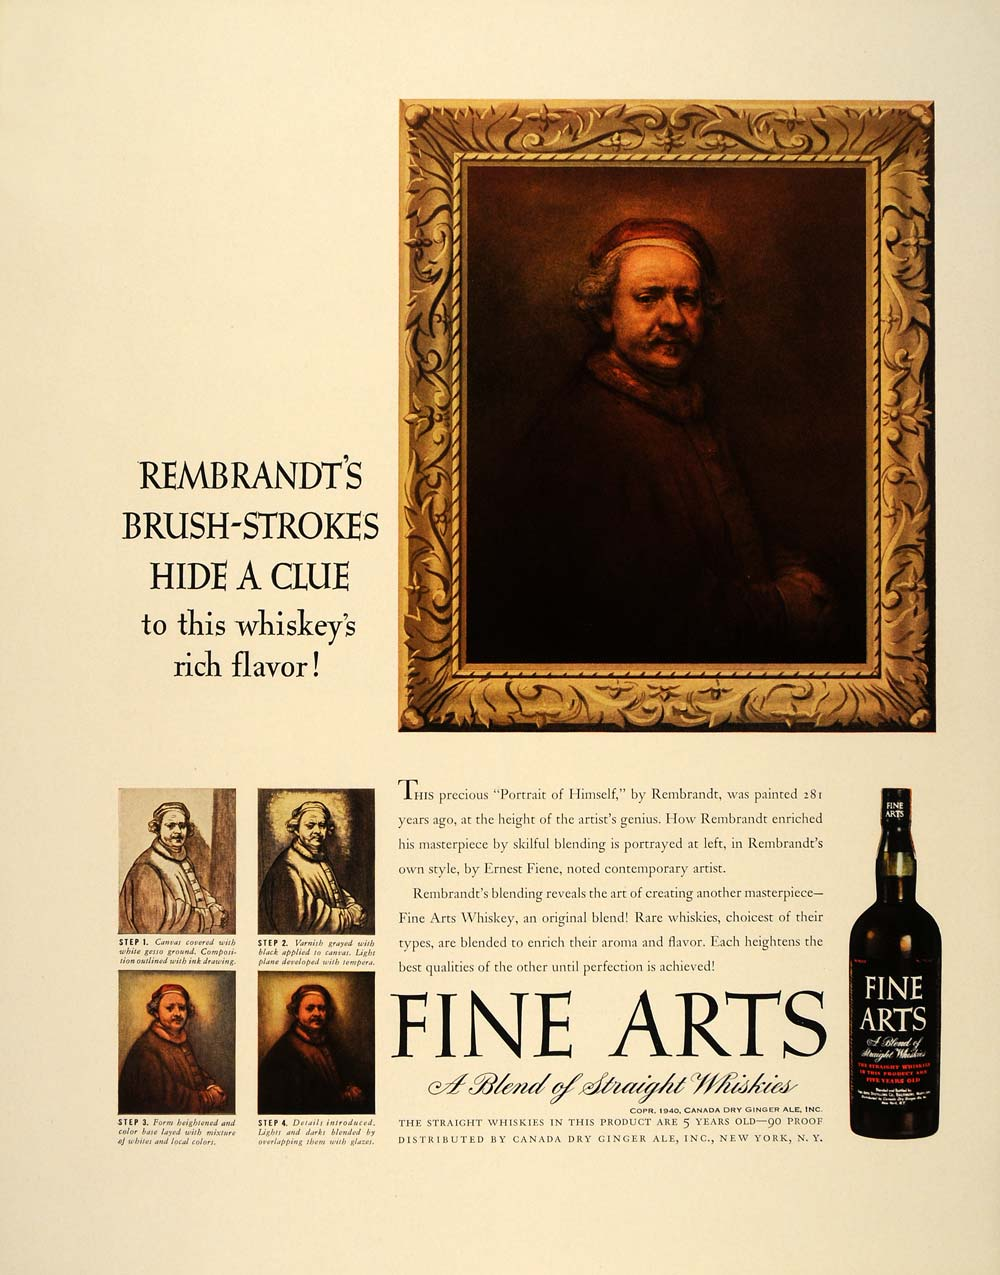 hight resolution of 1940 ad fine arts whiskey rembrandt self portrait original advertising ft6